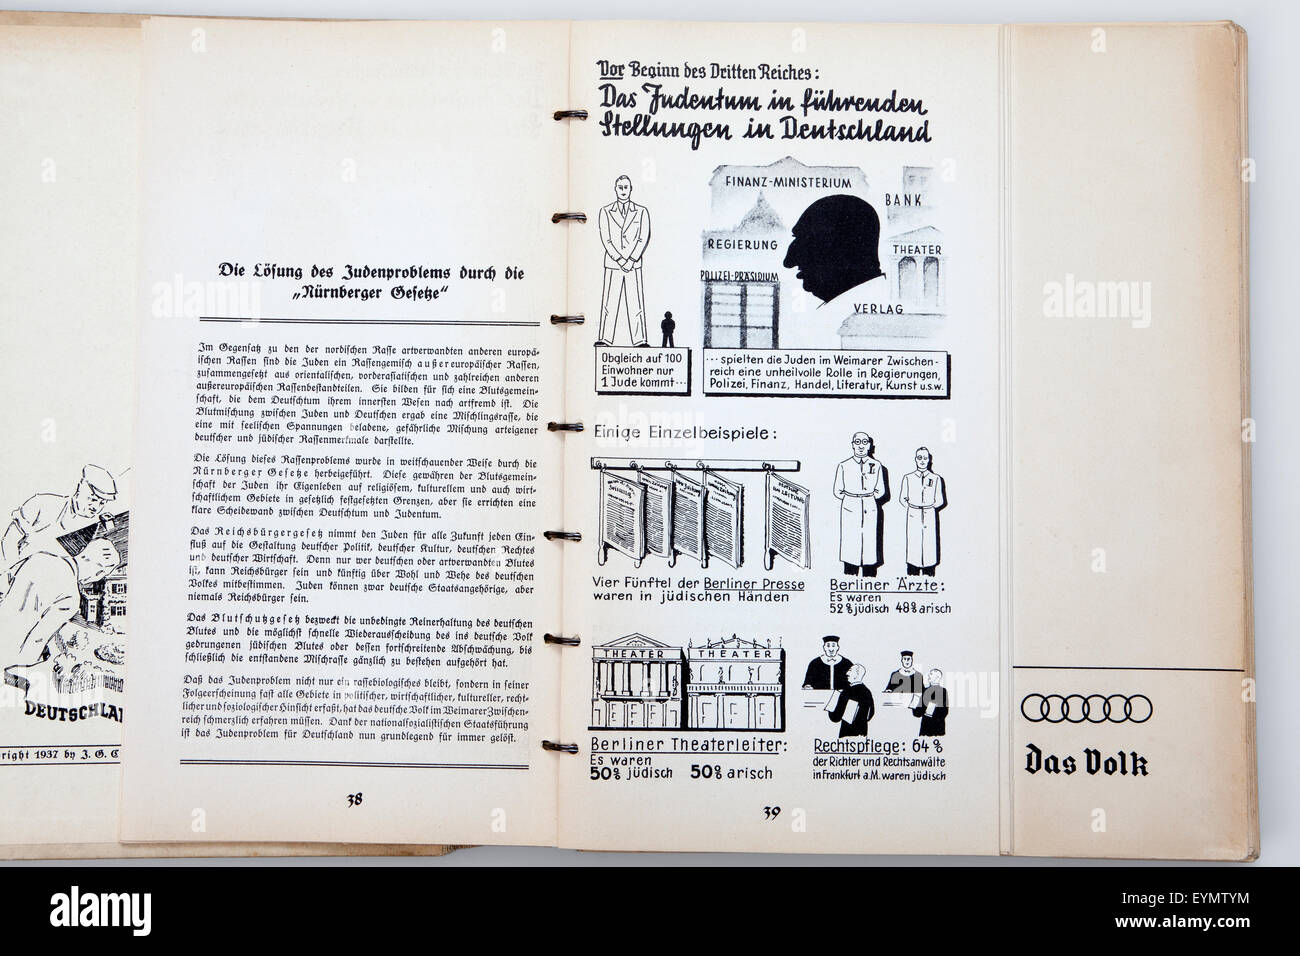 Nazi Third Reich illustrated guidebook to the infrastructure of Nazi-Germany, 1937, - Stock Image